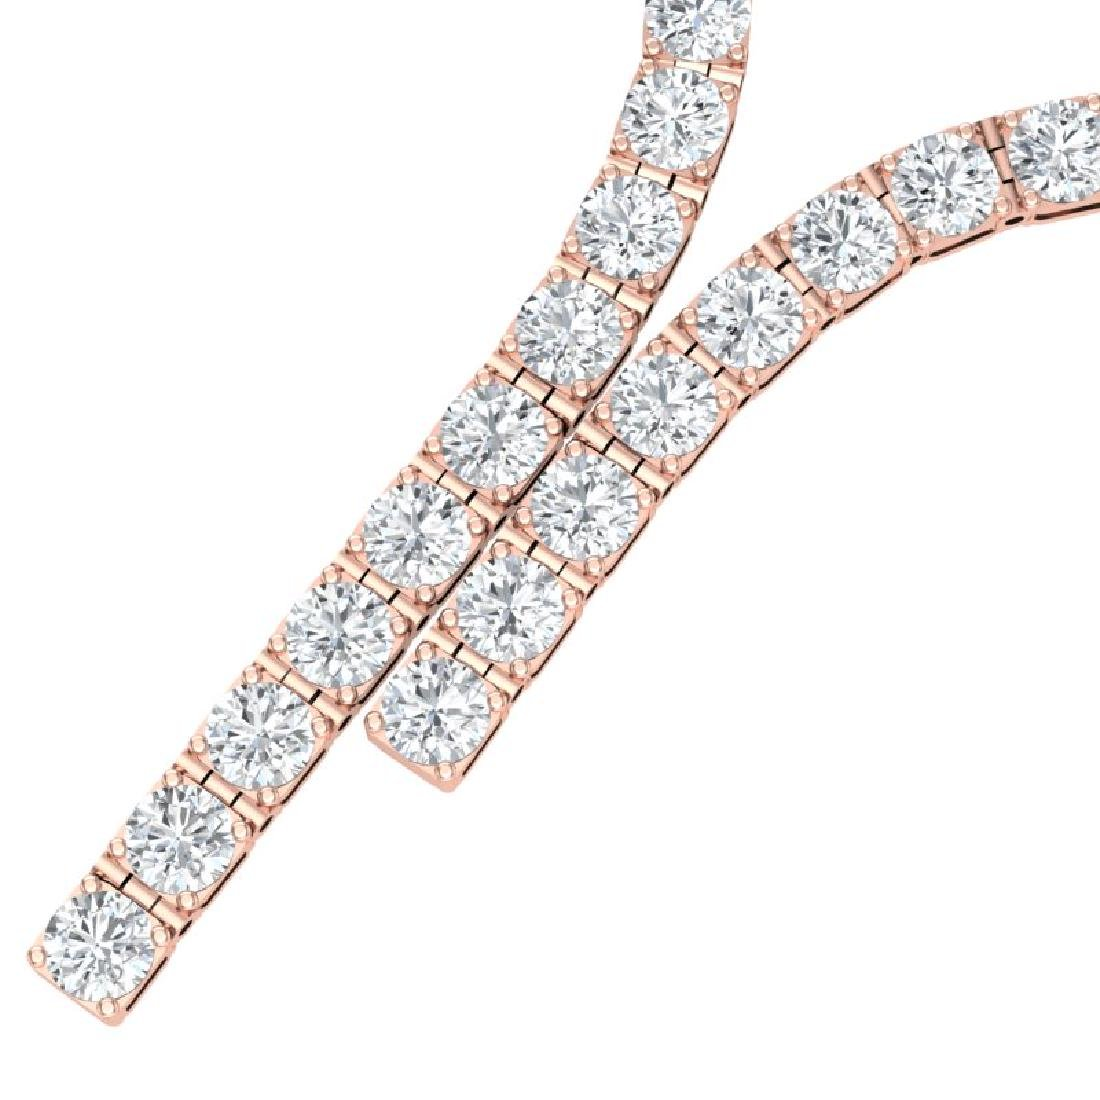 40 CTW Certified SI Diamond Necklace 18K Rose Gold - 2